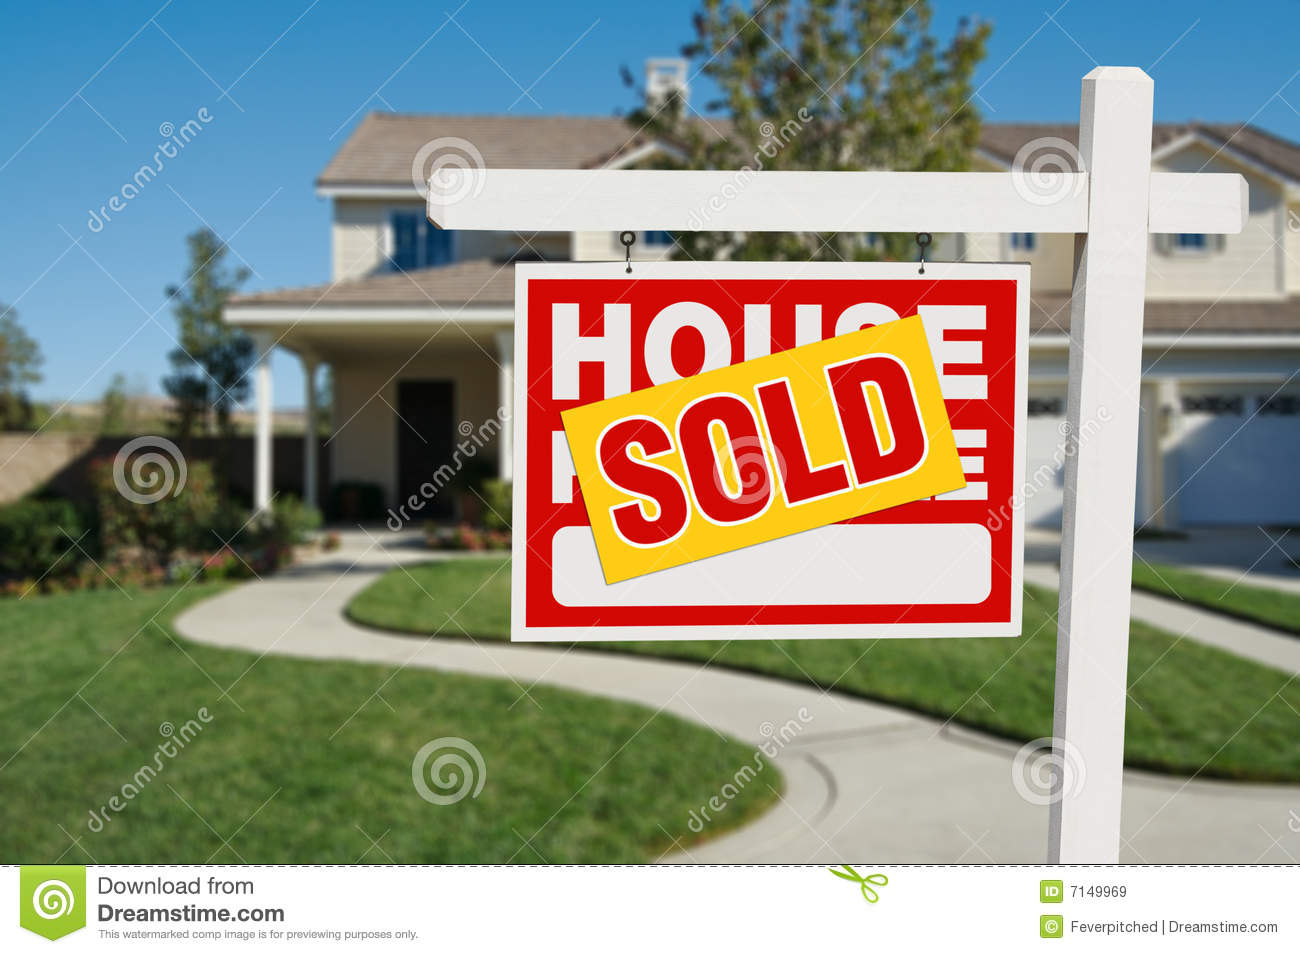 12 Free Stock Photos Of Homes With A Sold Sign Images